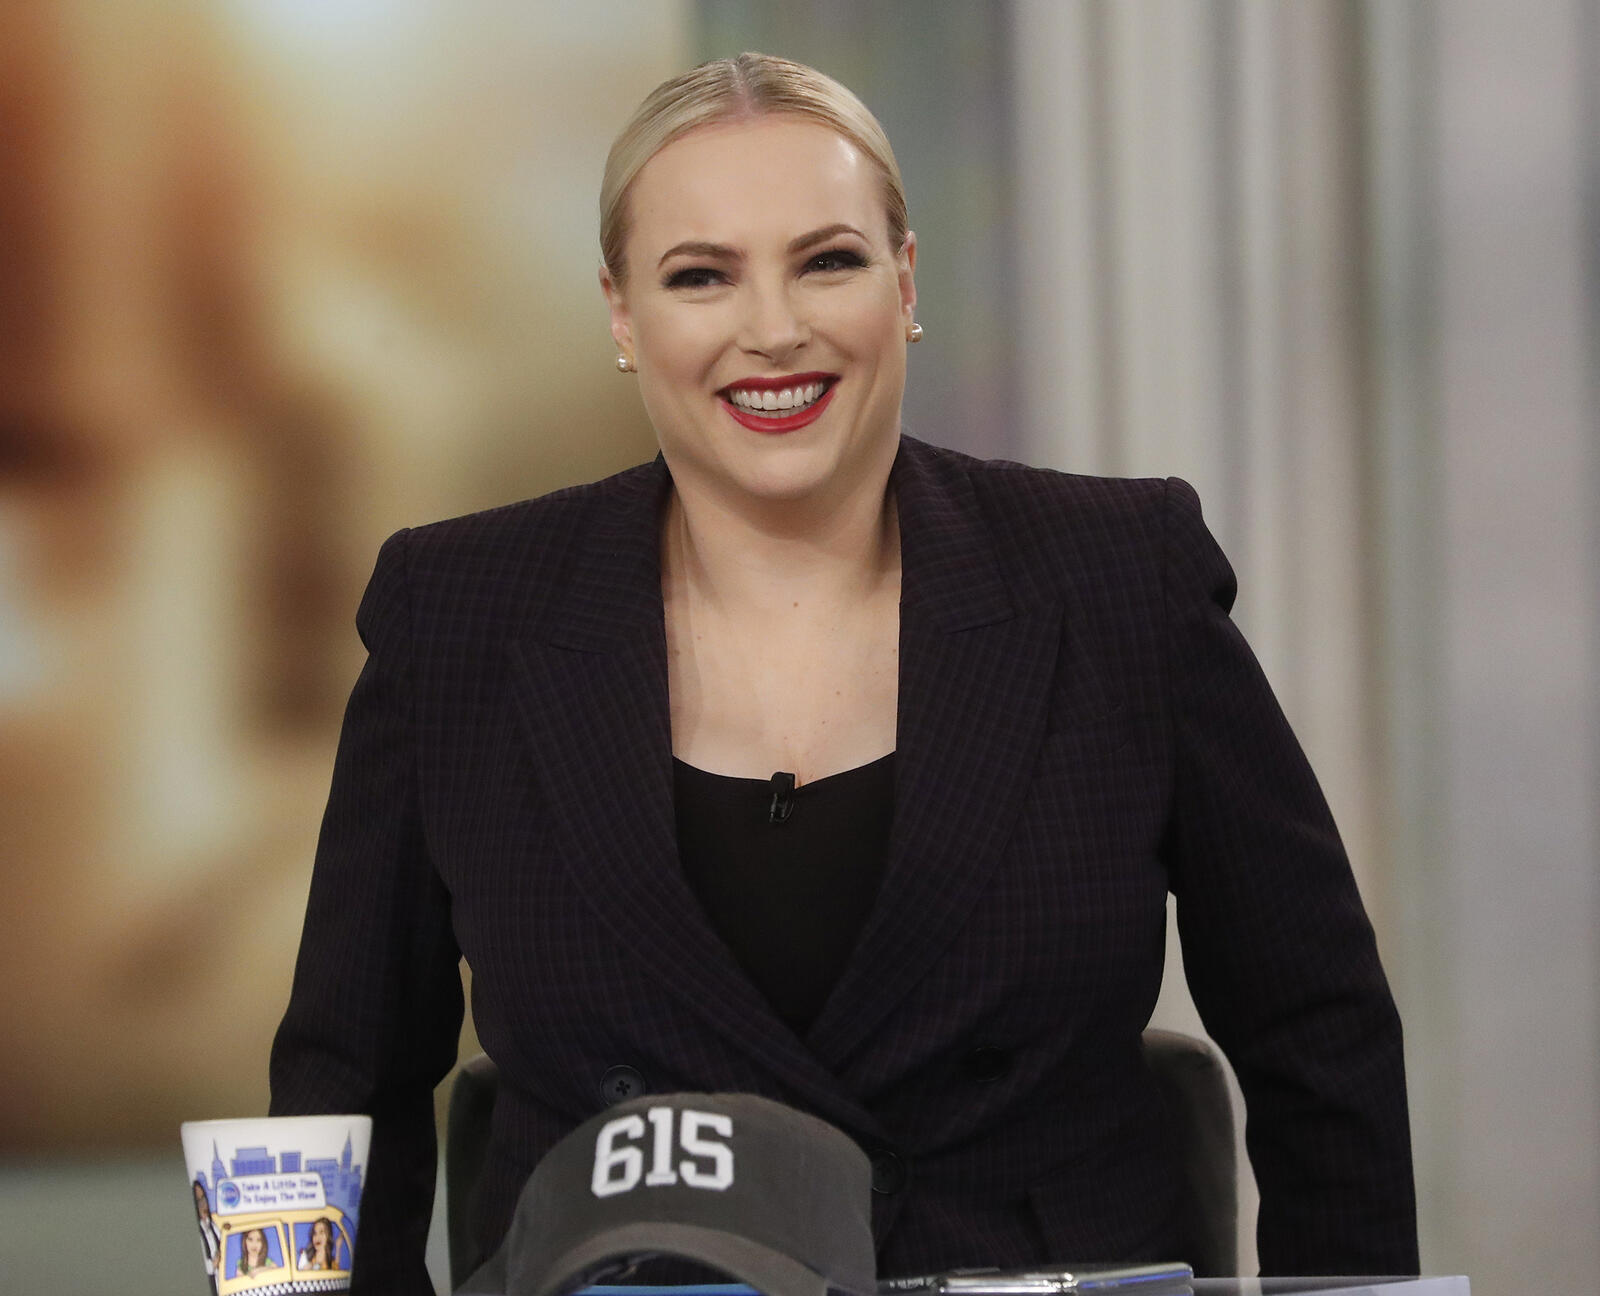 219: 07/01/21 - Meghan Mccain Is Leaving 'The View'—Draws Comparisons On How Women & Men Are Portrayed By Media